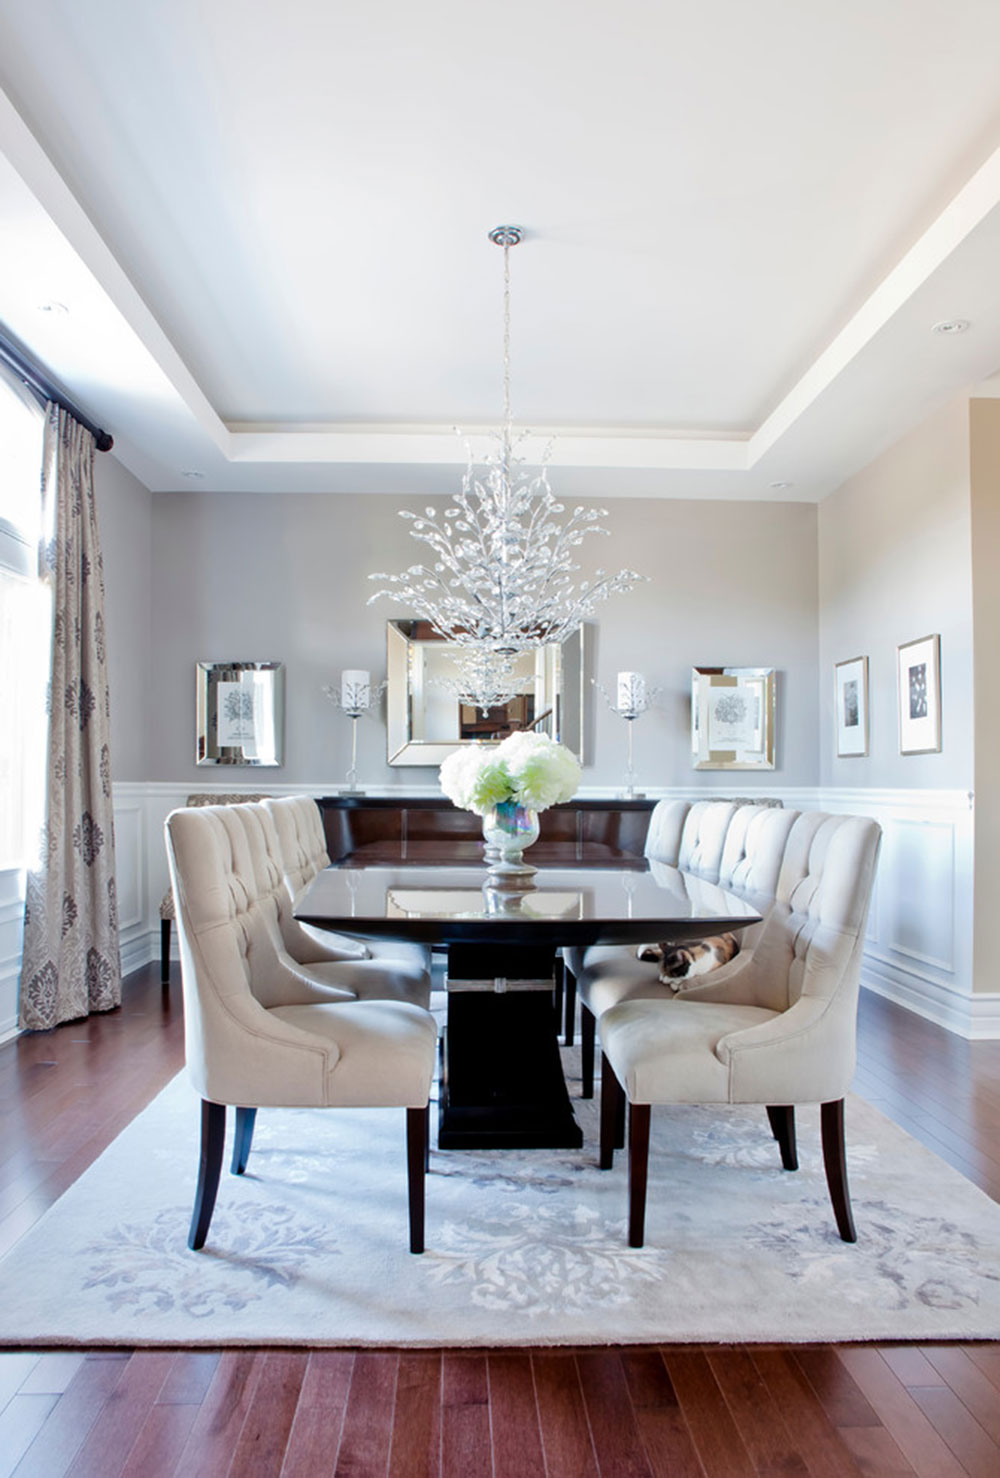 how to choose a chandelier for the dining room